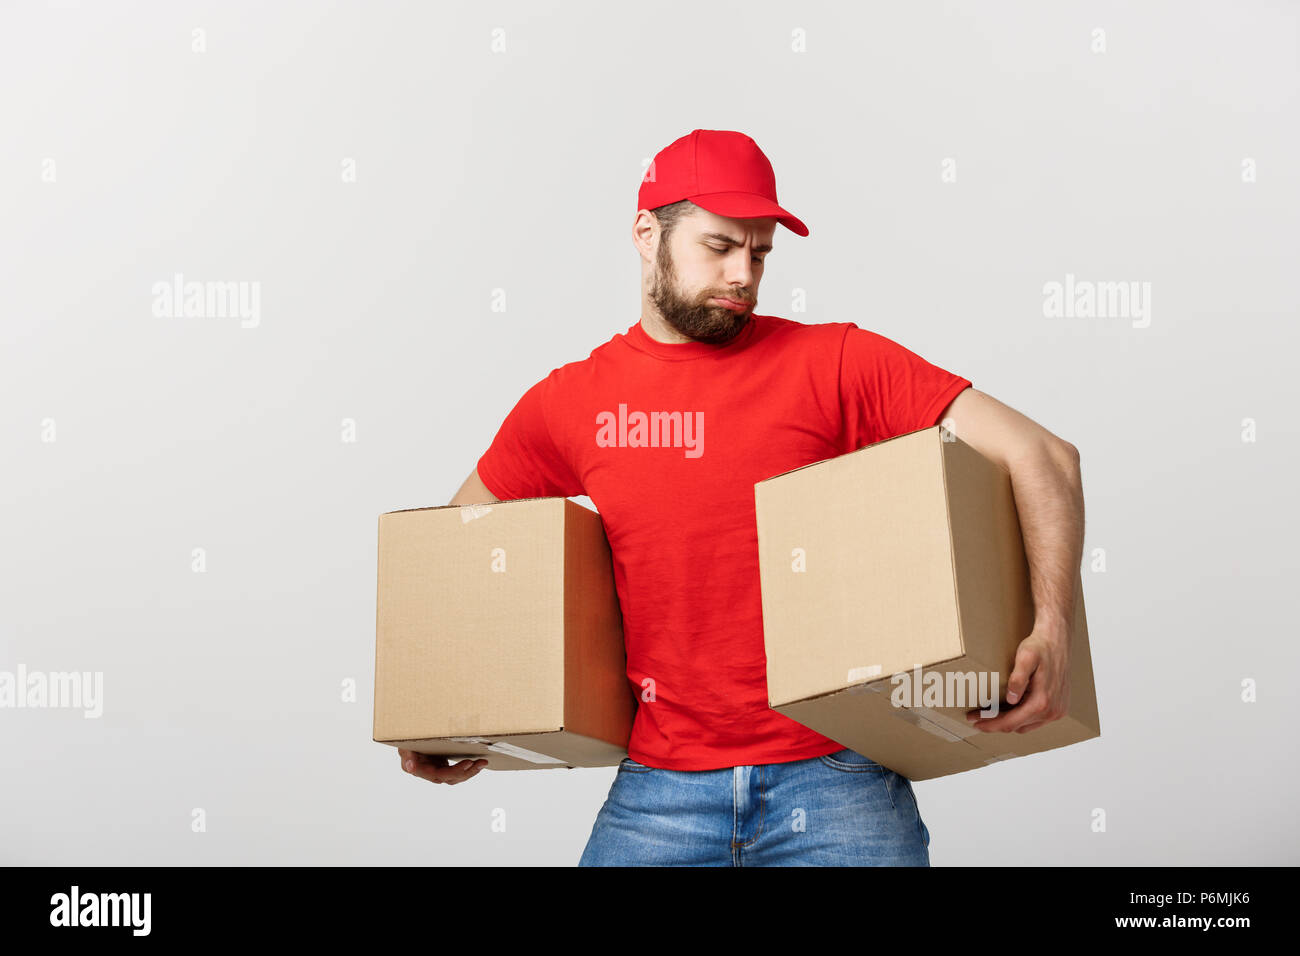 Delivery young man in red uniform holding two empty cardboard boxes isolated on white background. Copy space for advertisement - Stock Image